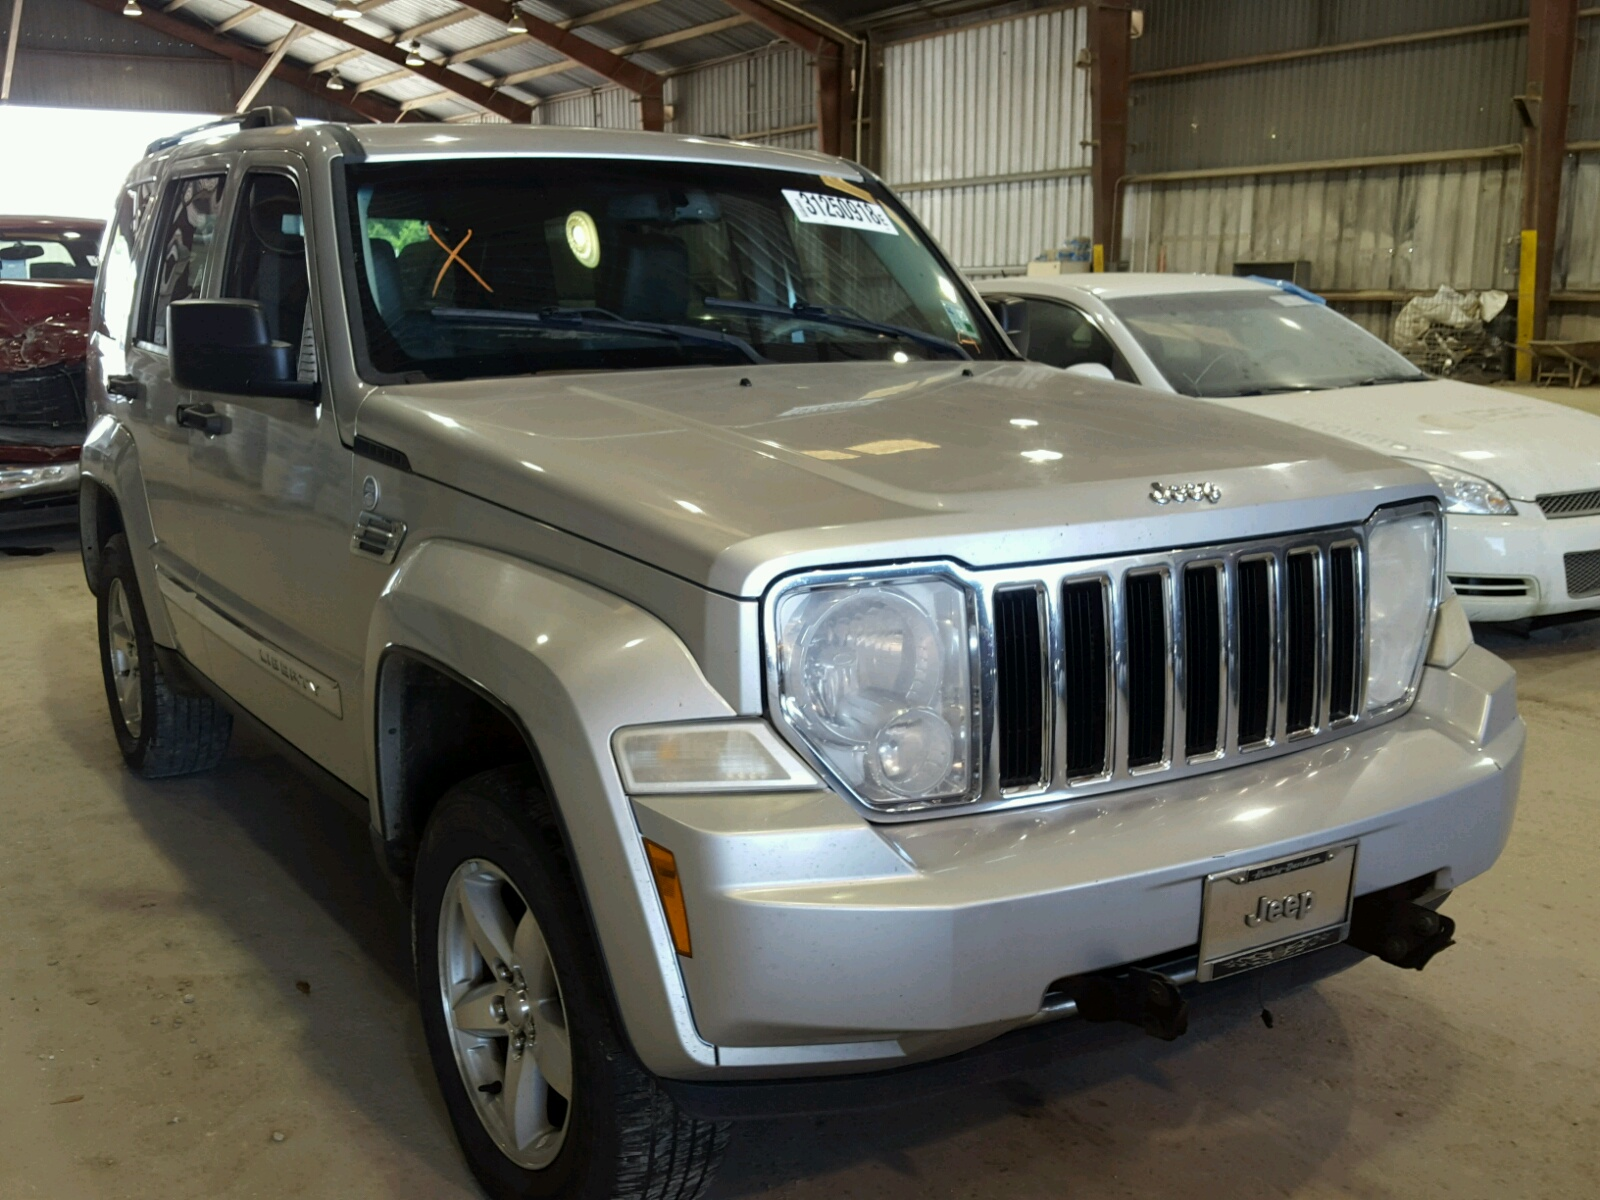 auto lot in cher certificate title on grand baton of rouge left la carfinder en auctions jeep sale view copart online gold